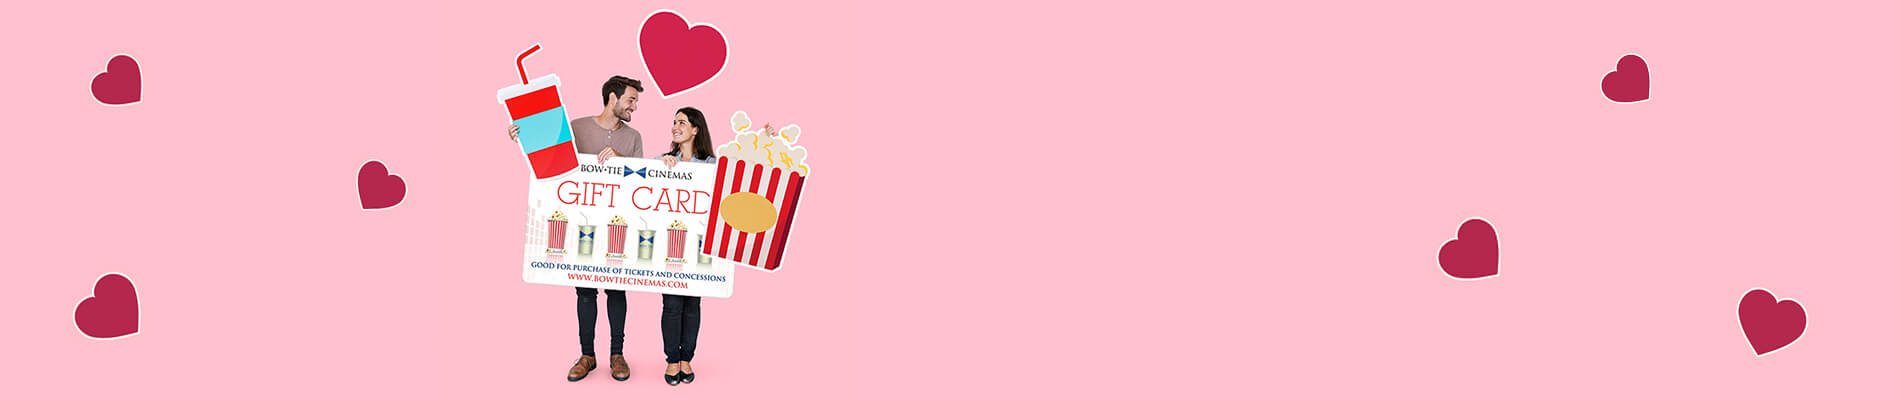 Bow Tie Cinemas Valentine's Day Promotion